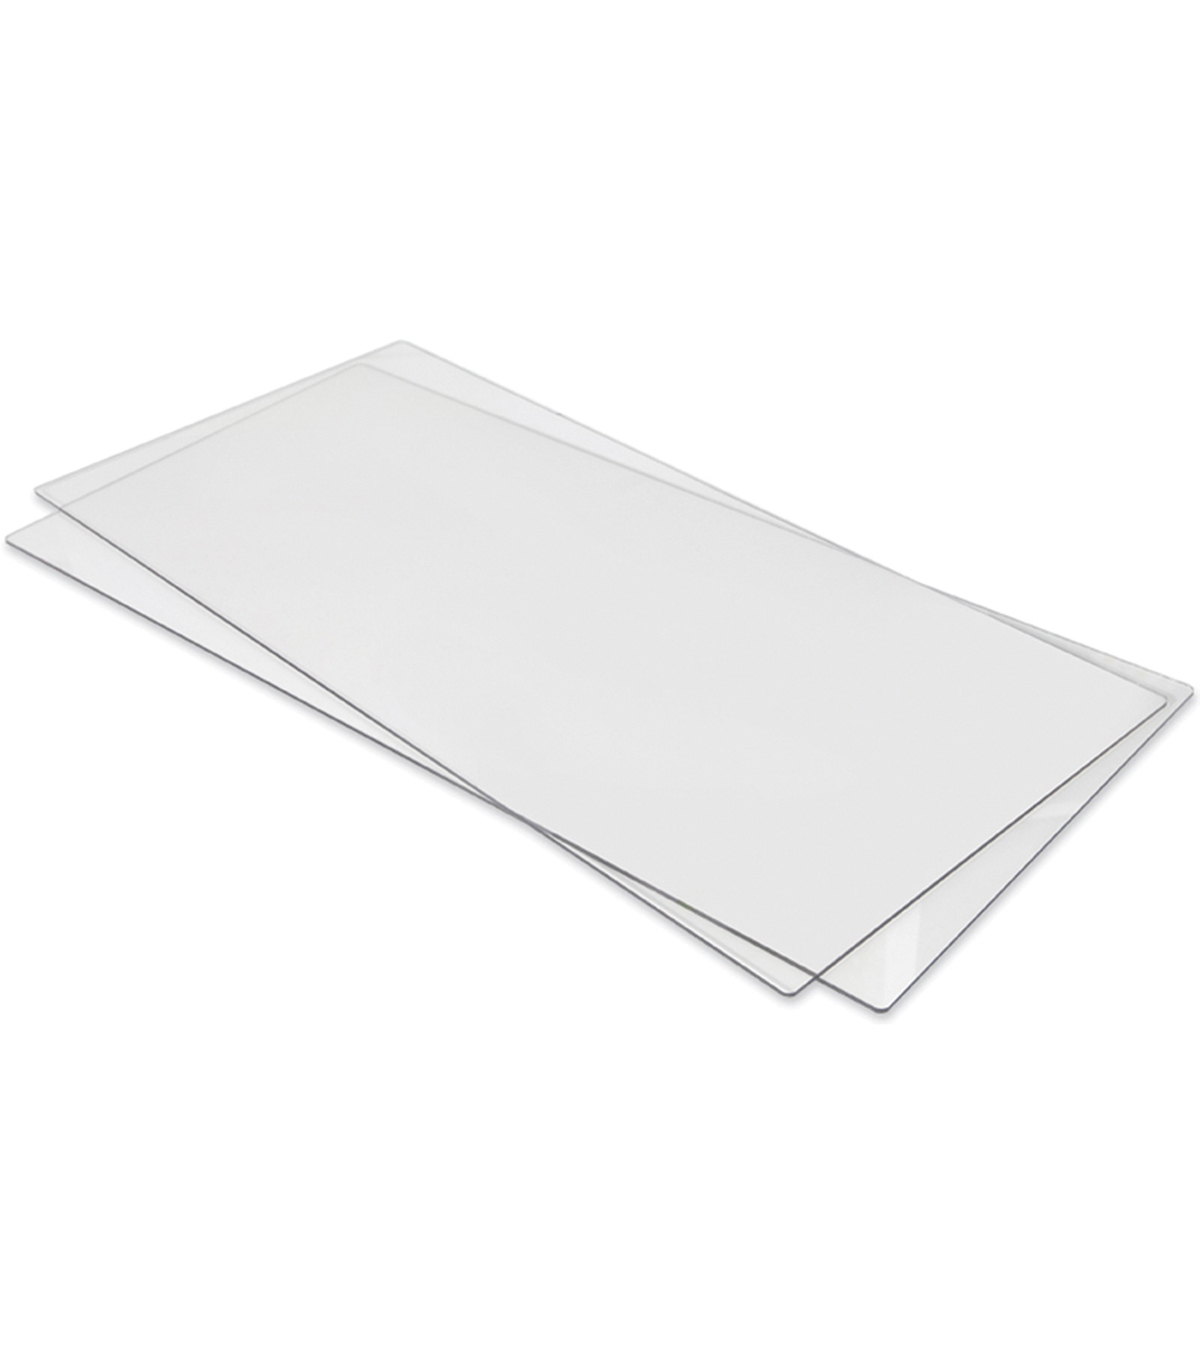 Sizzix Big Shot Pro Extended Cutting Pads-2PK